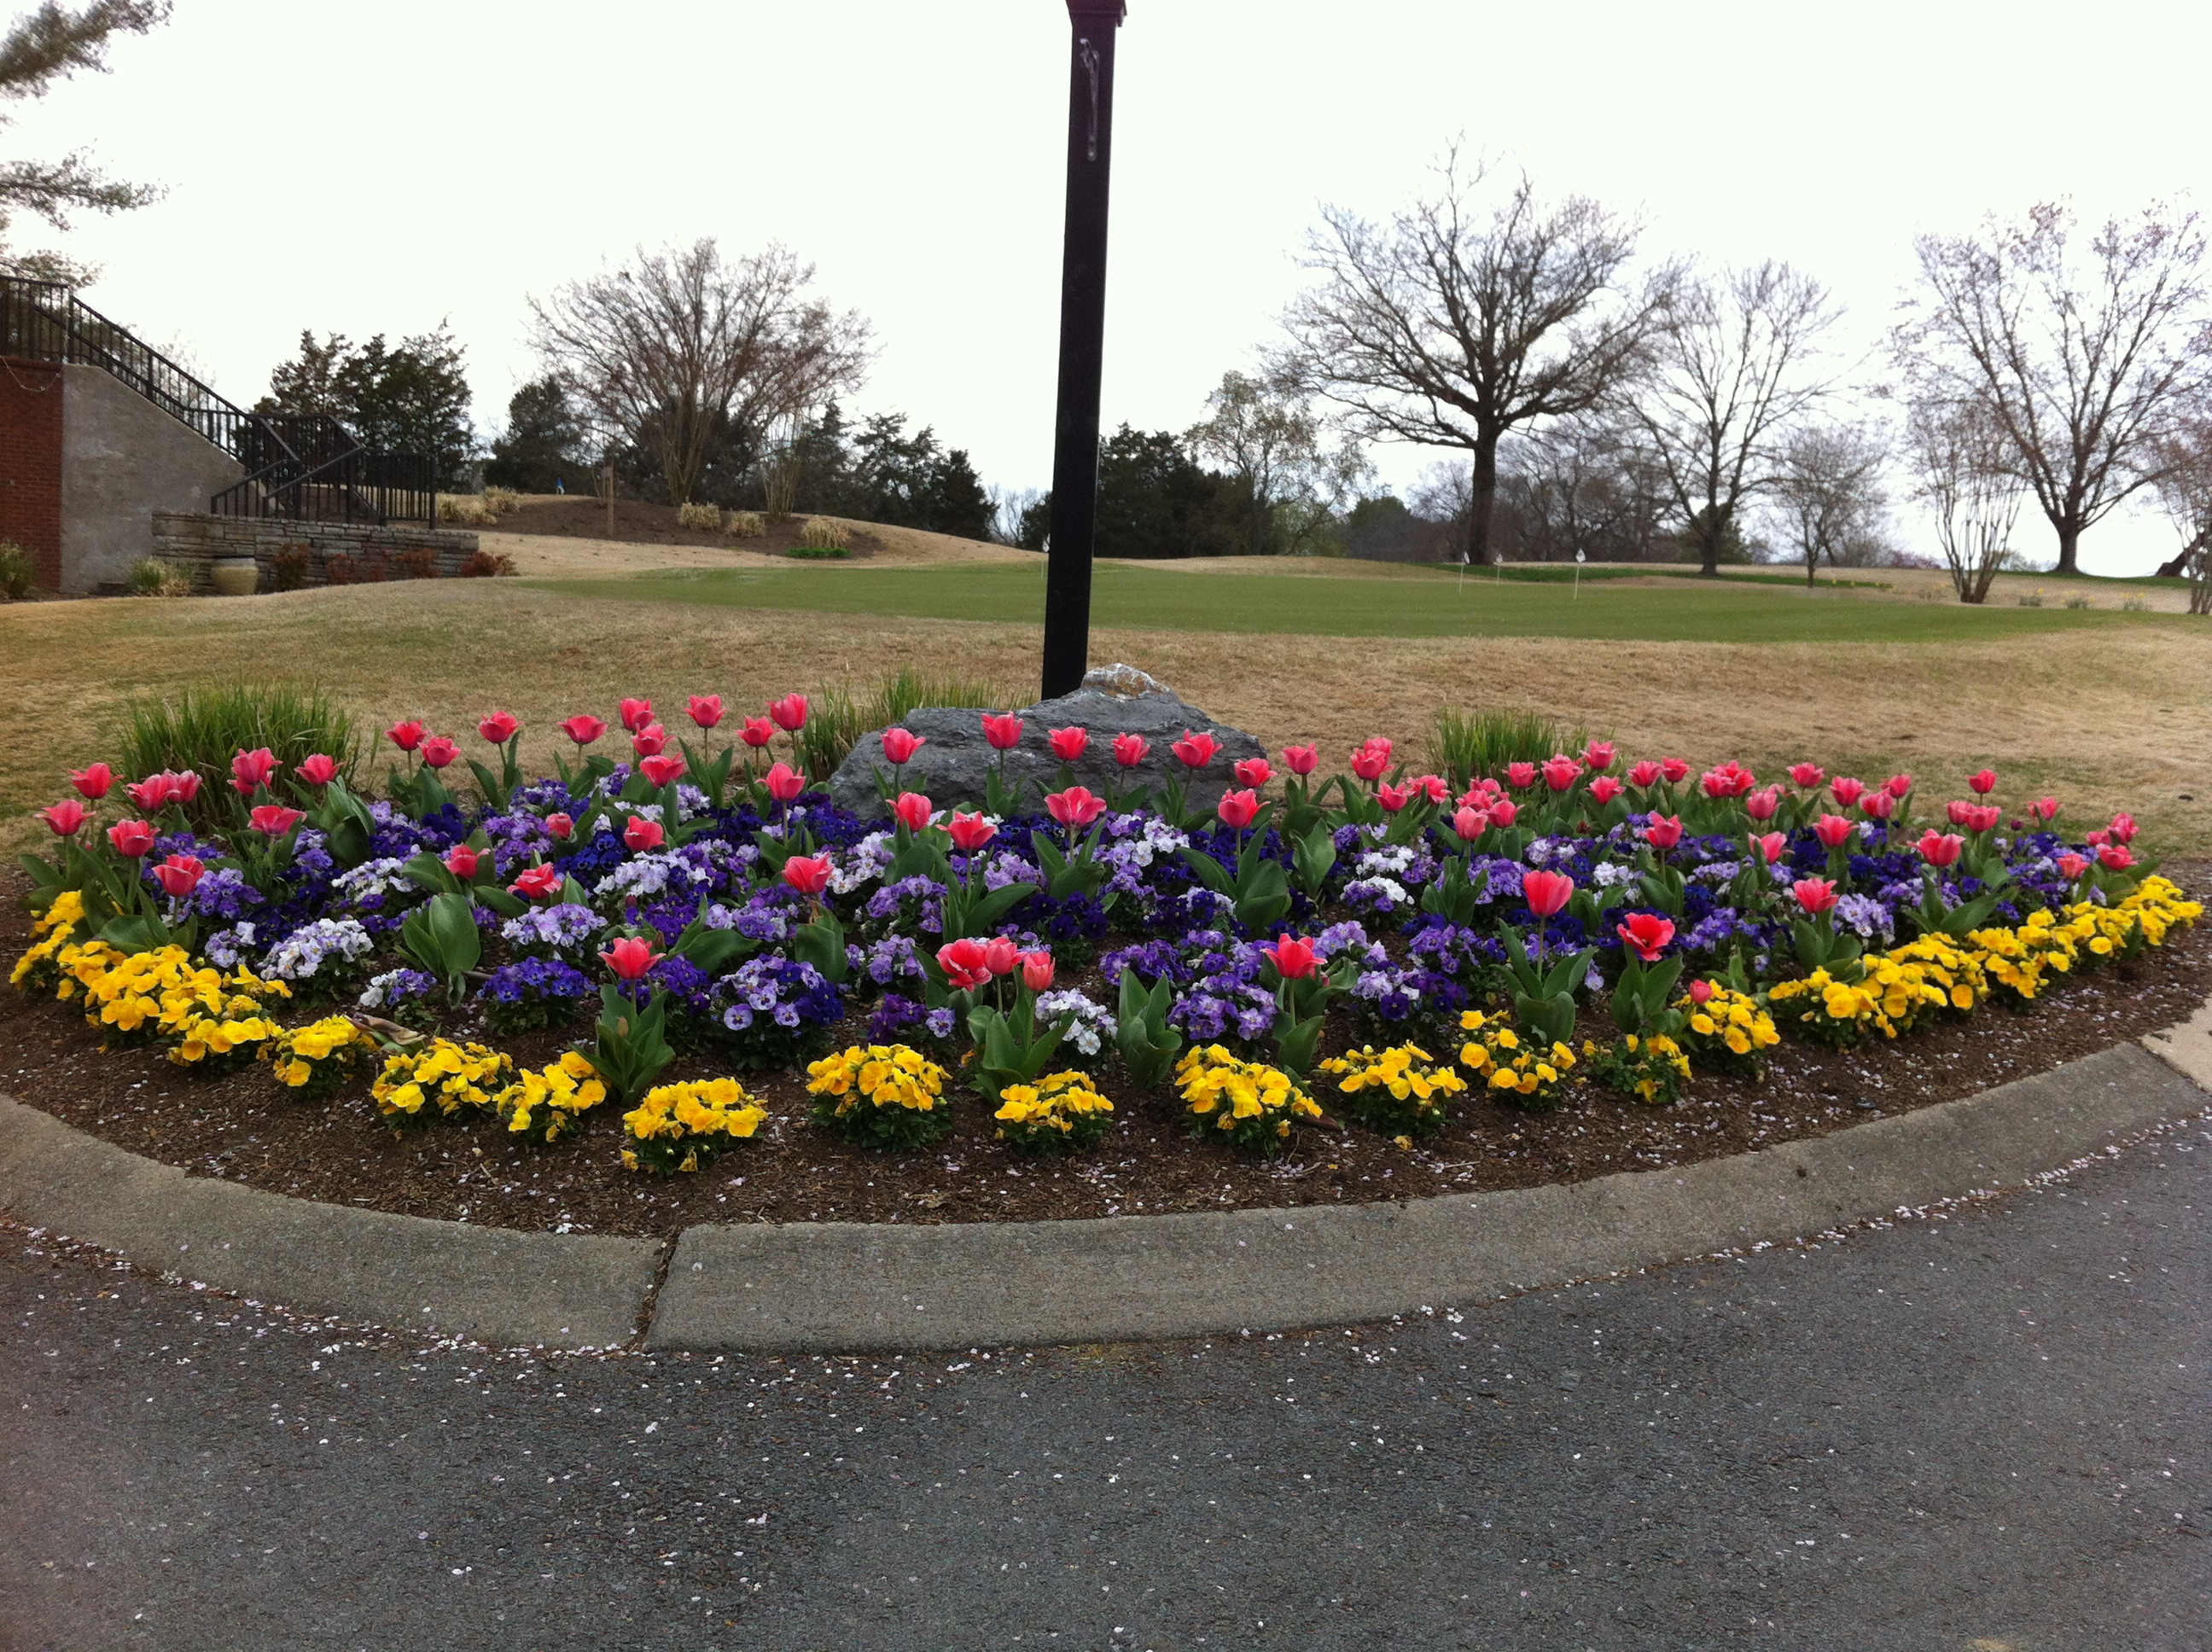 Annuals 007 bluegrass yacht country club golf course maintenance annuals 007 izmirmasajfo